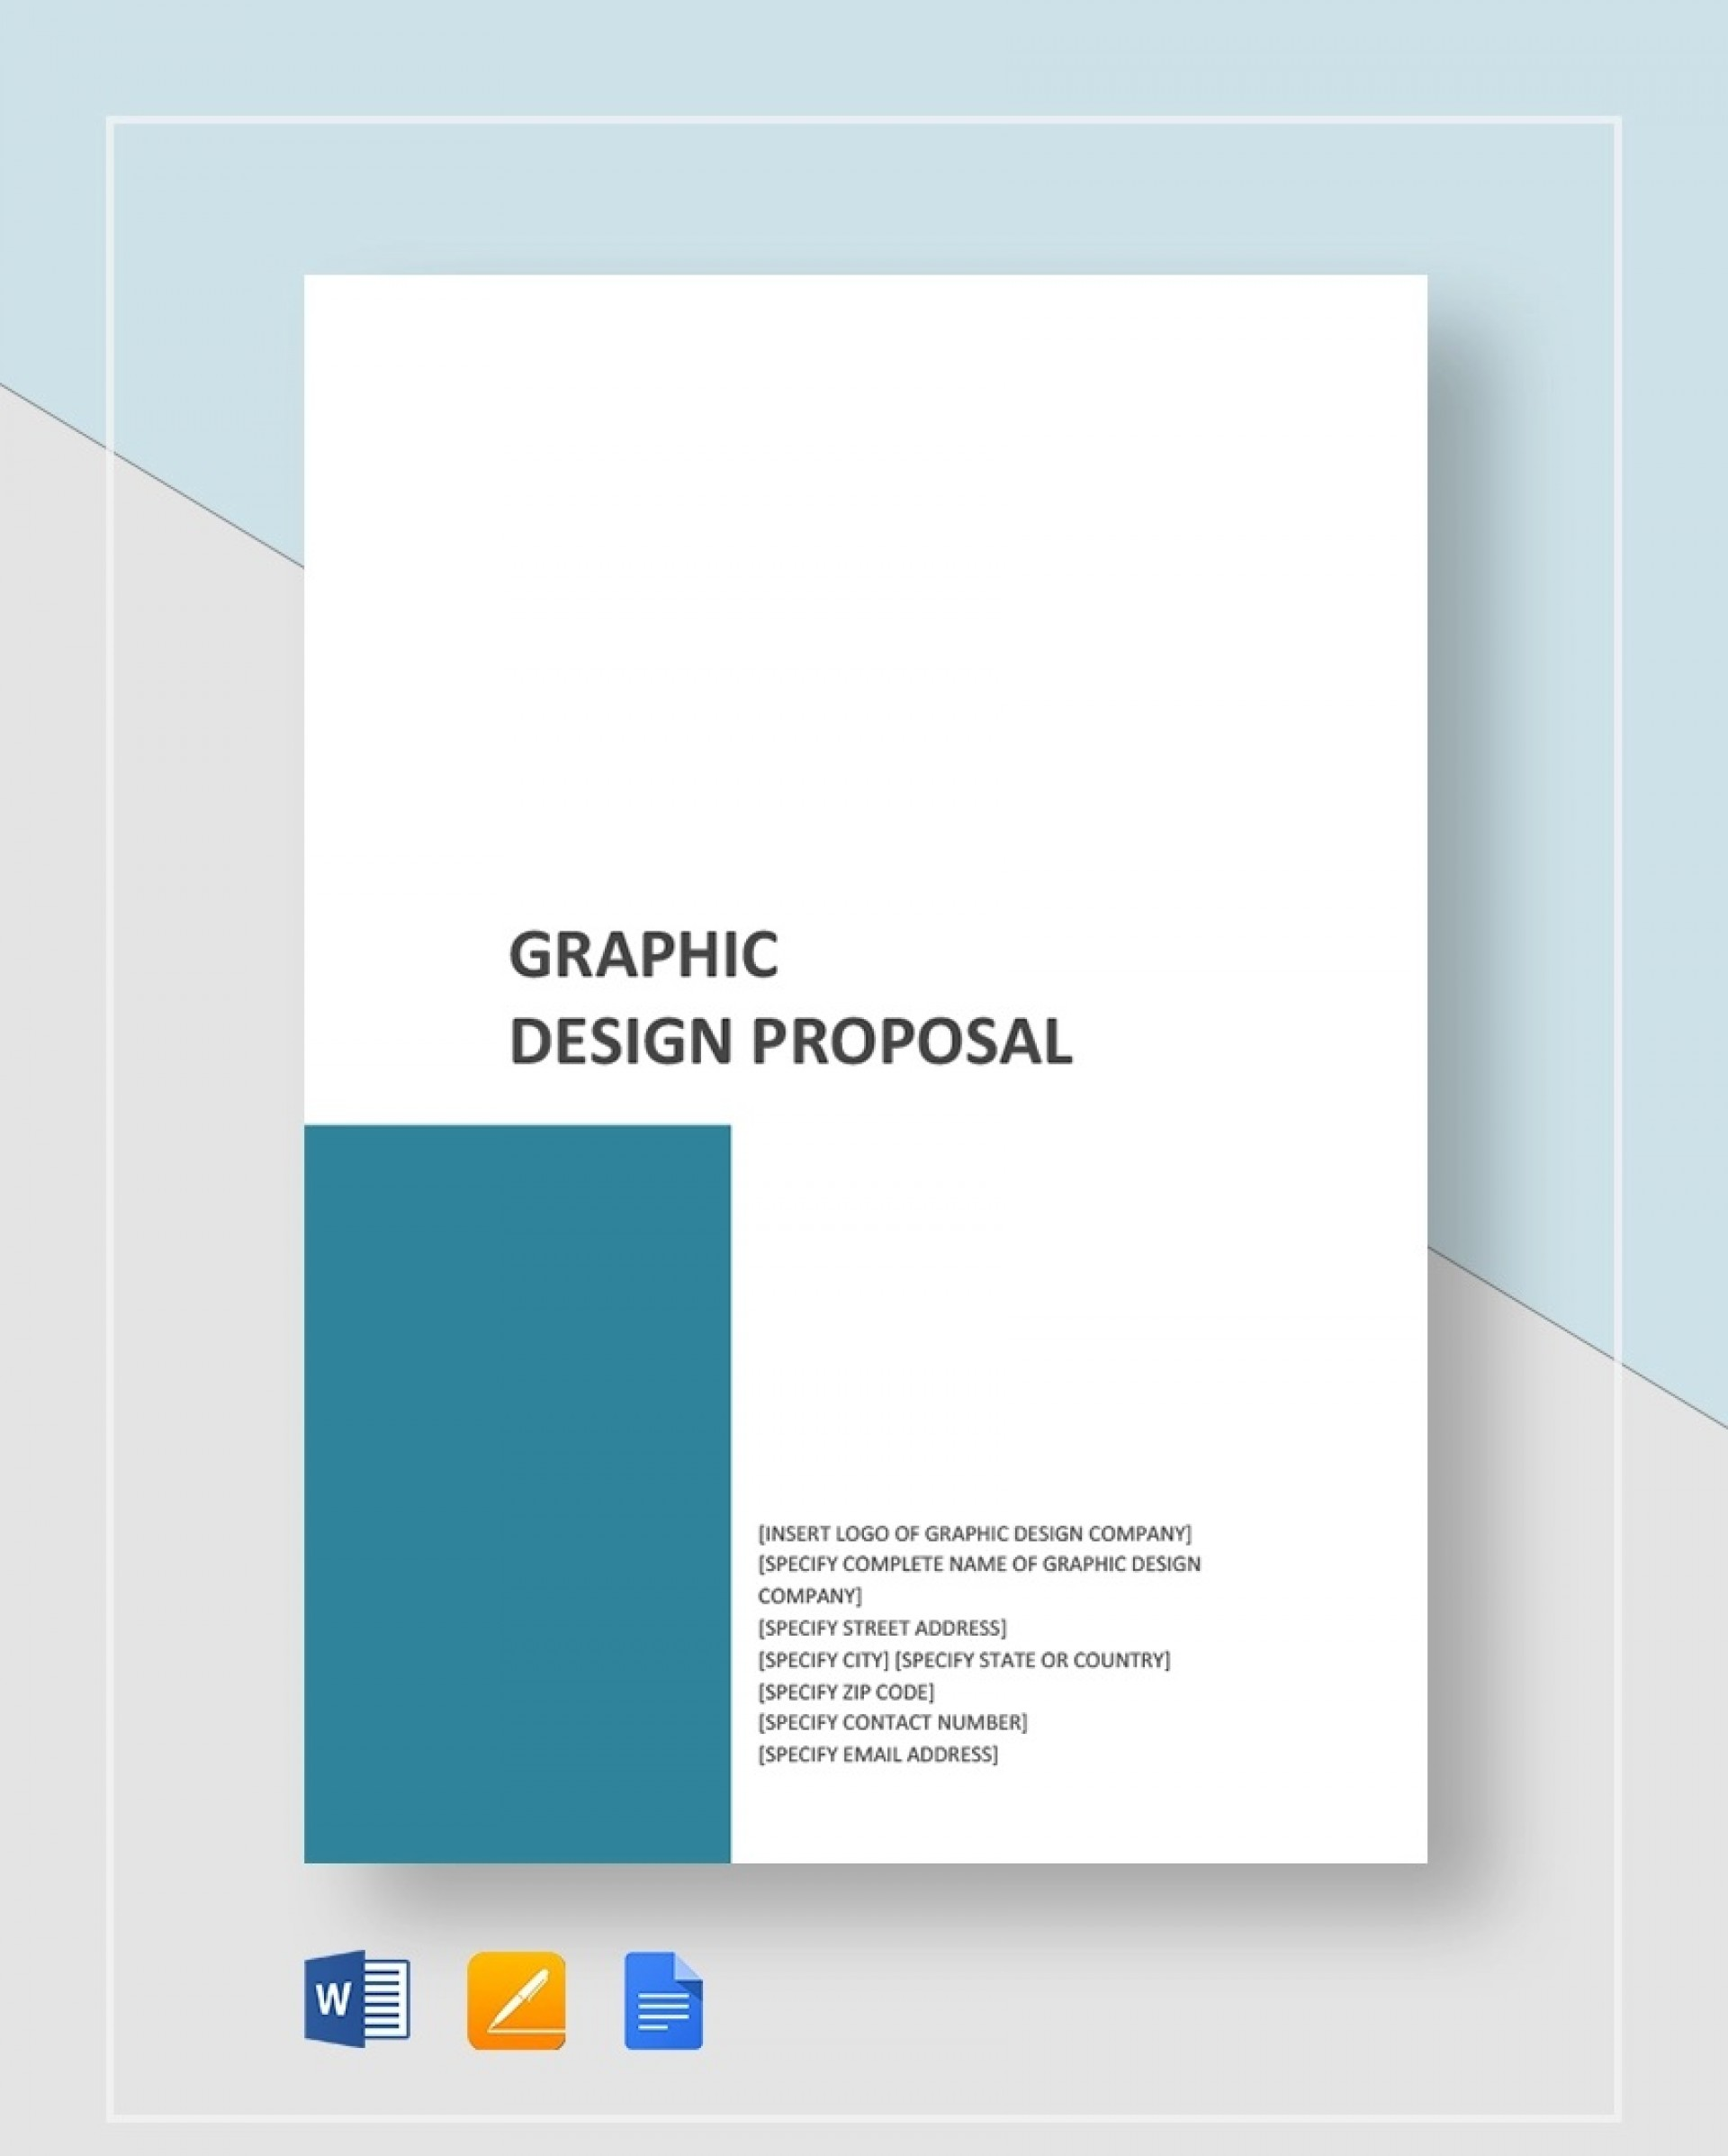 Template Graphic Design Proposal Idea  Free Freelance1920